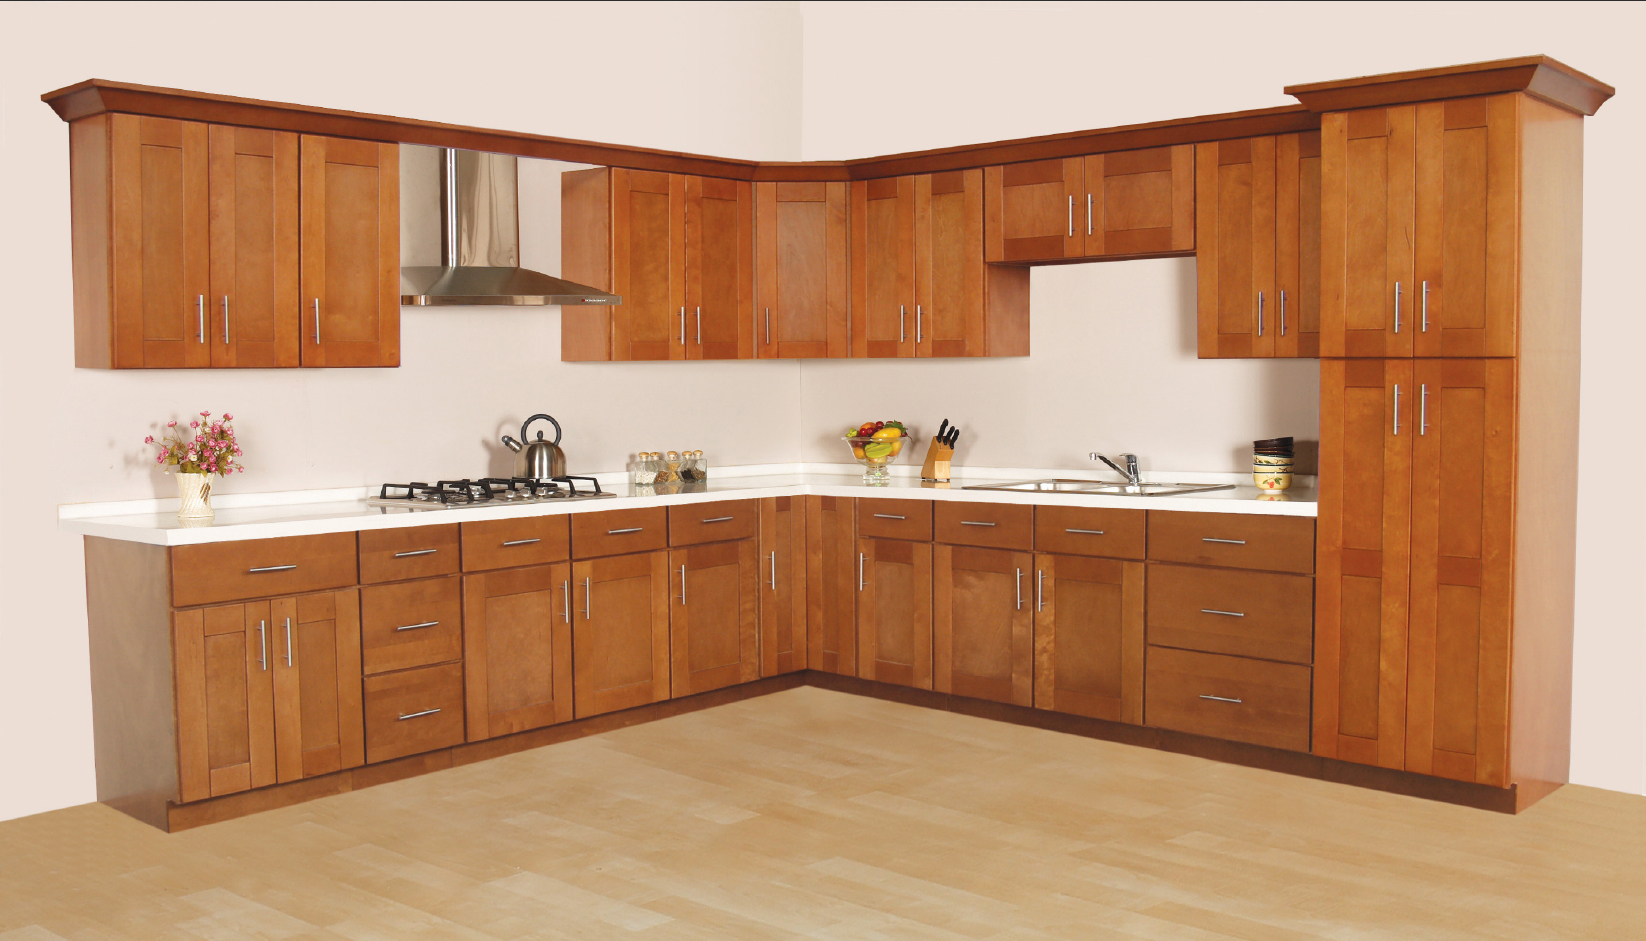 Menards kitchen cabinet price and details home and for Cupboard cabinet